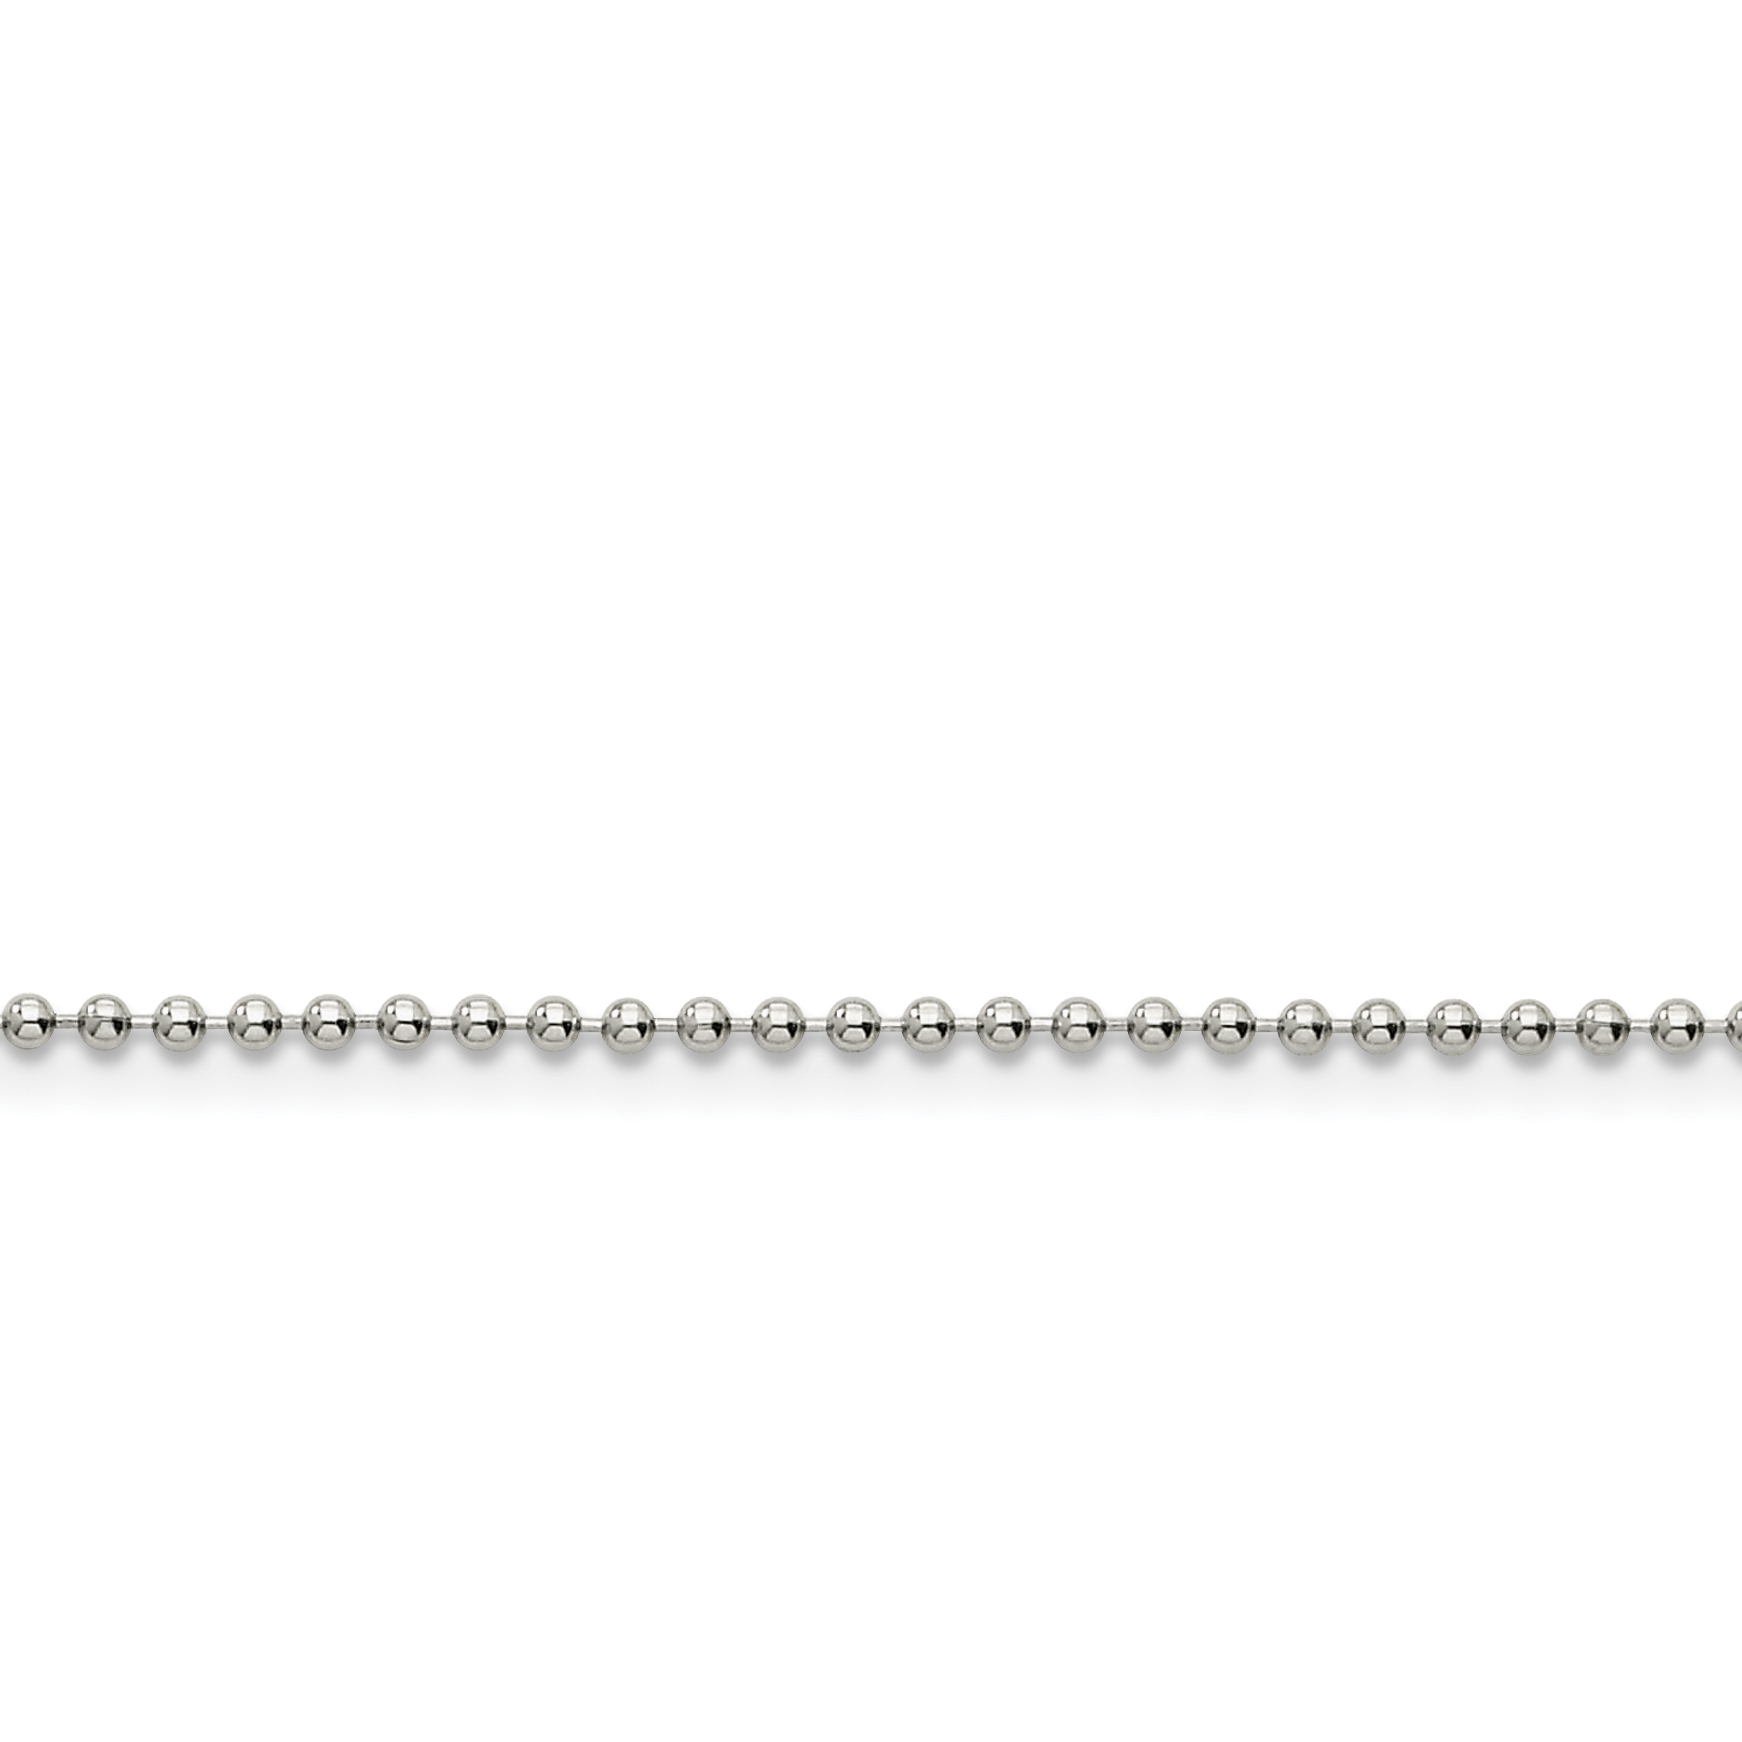 Stainless Steel 2mm 18 Inch Ball Chain Necklace Pendant Charm Beadsed Fashion Jewelry Gifts For Women For Her - image 3 de 3